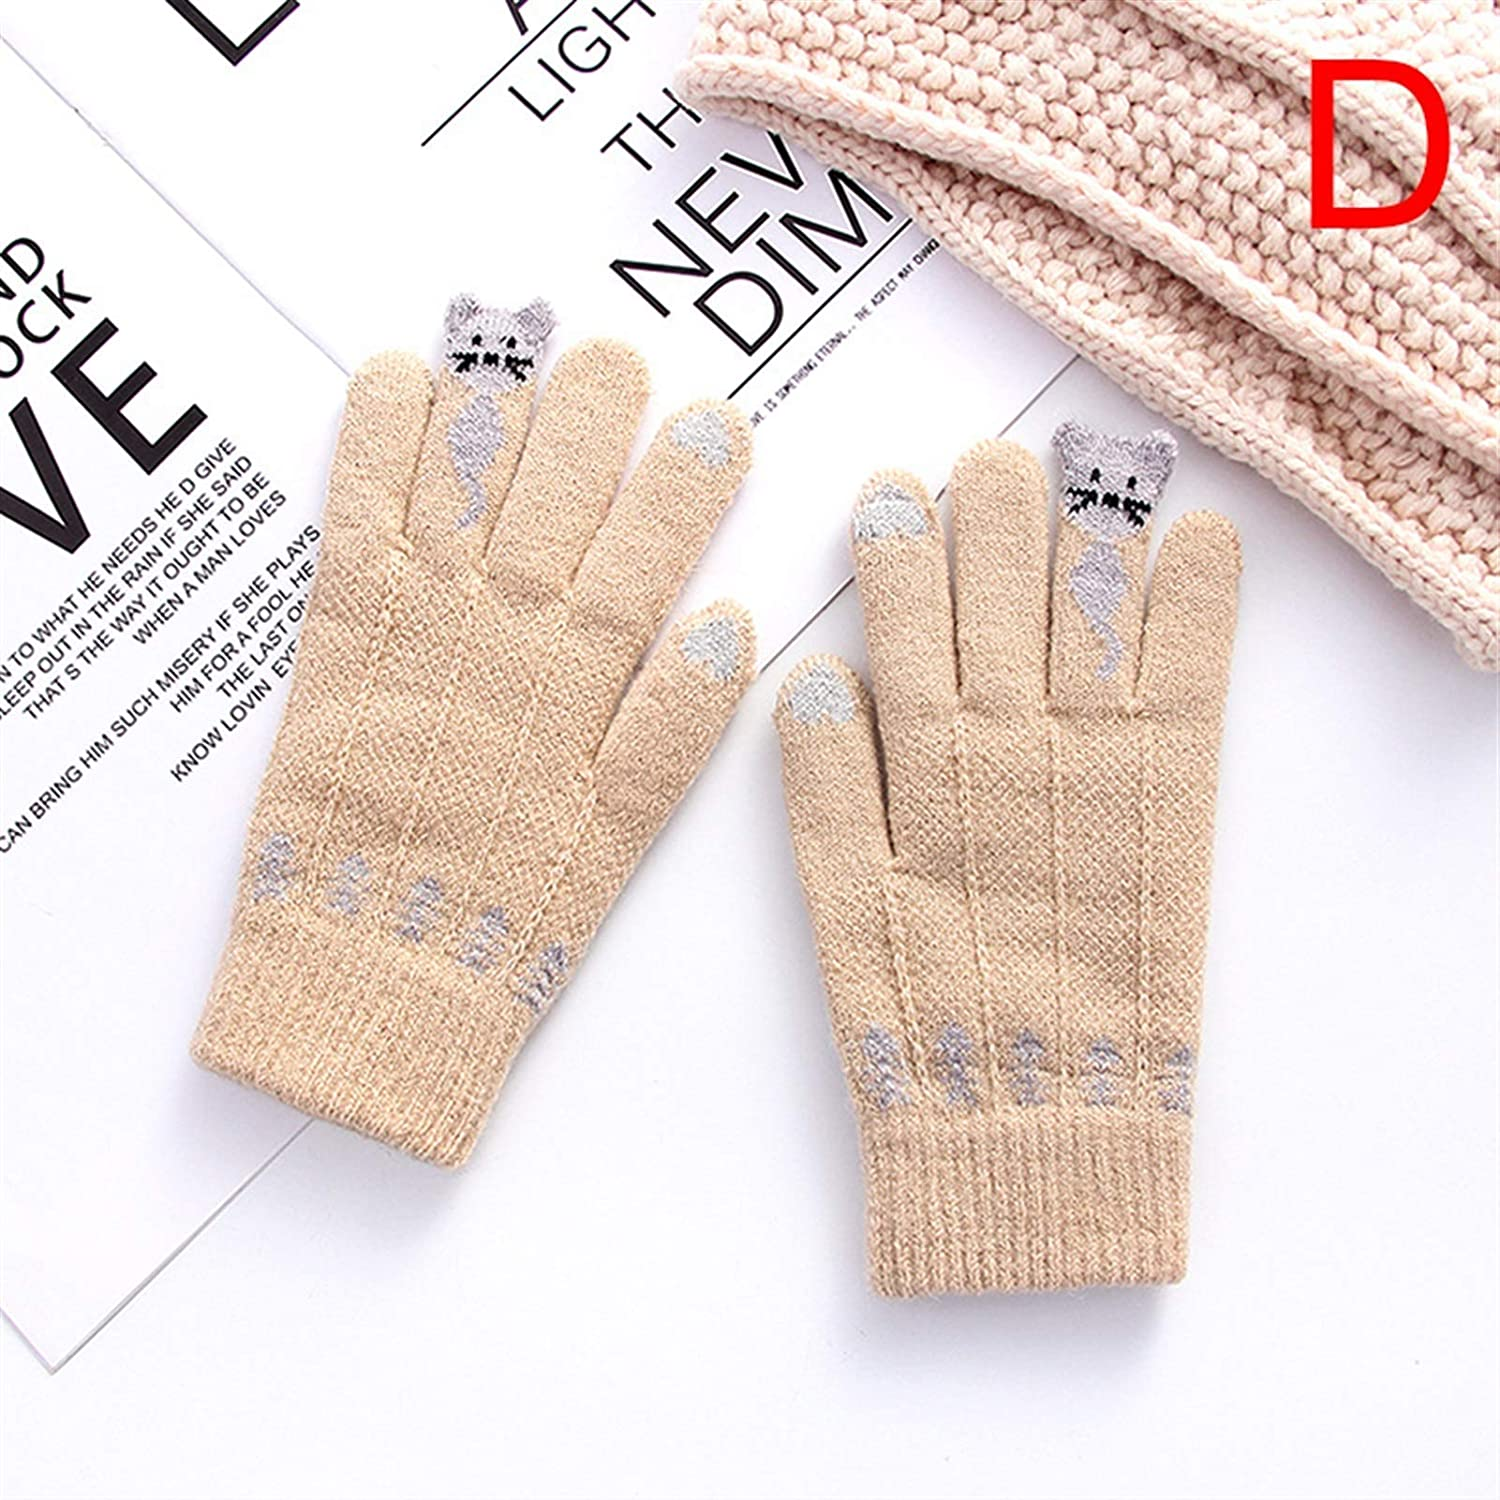 FSJIANGYUE Winter Gloves Winter Touch Screen Gloves Women Men Warm Stretch Knit Mittens Imitation Wool Full Finger Guantes Female Crochet Thicken (Color : D) (Color : D, Size : -)